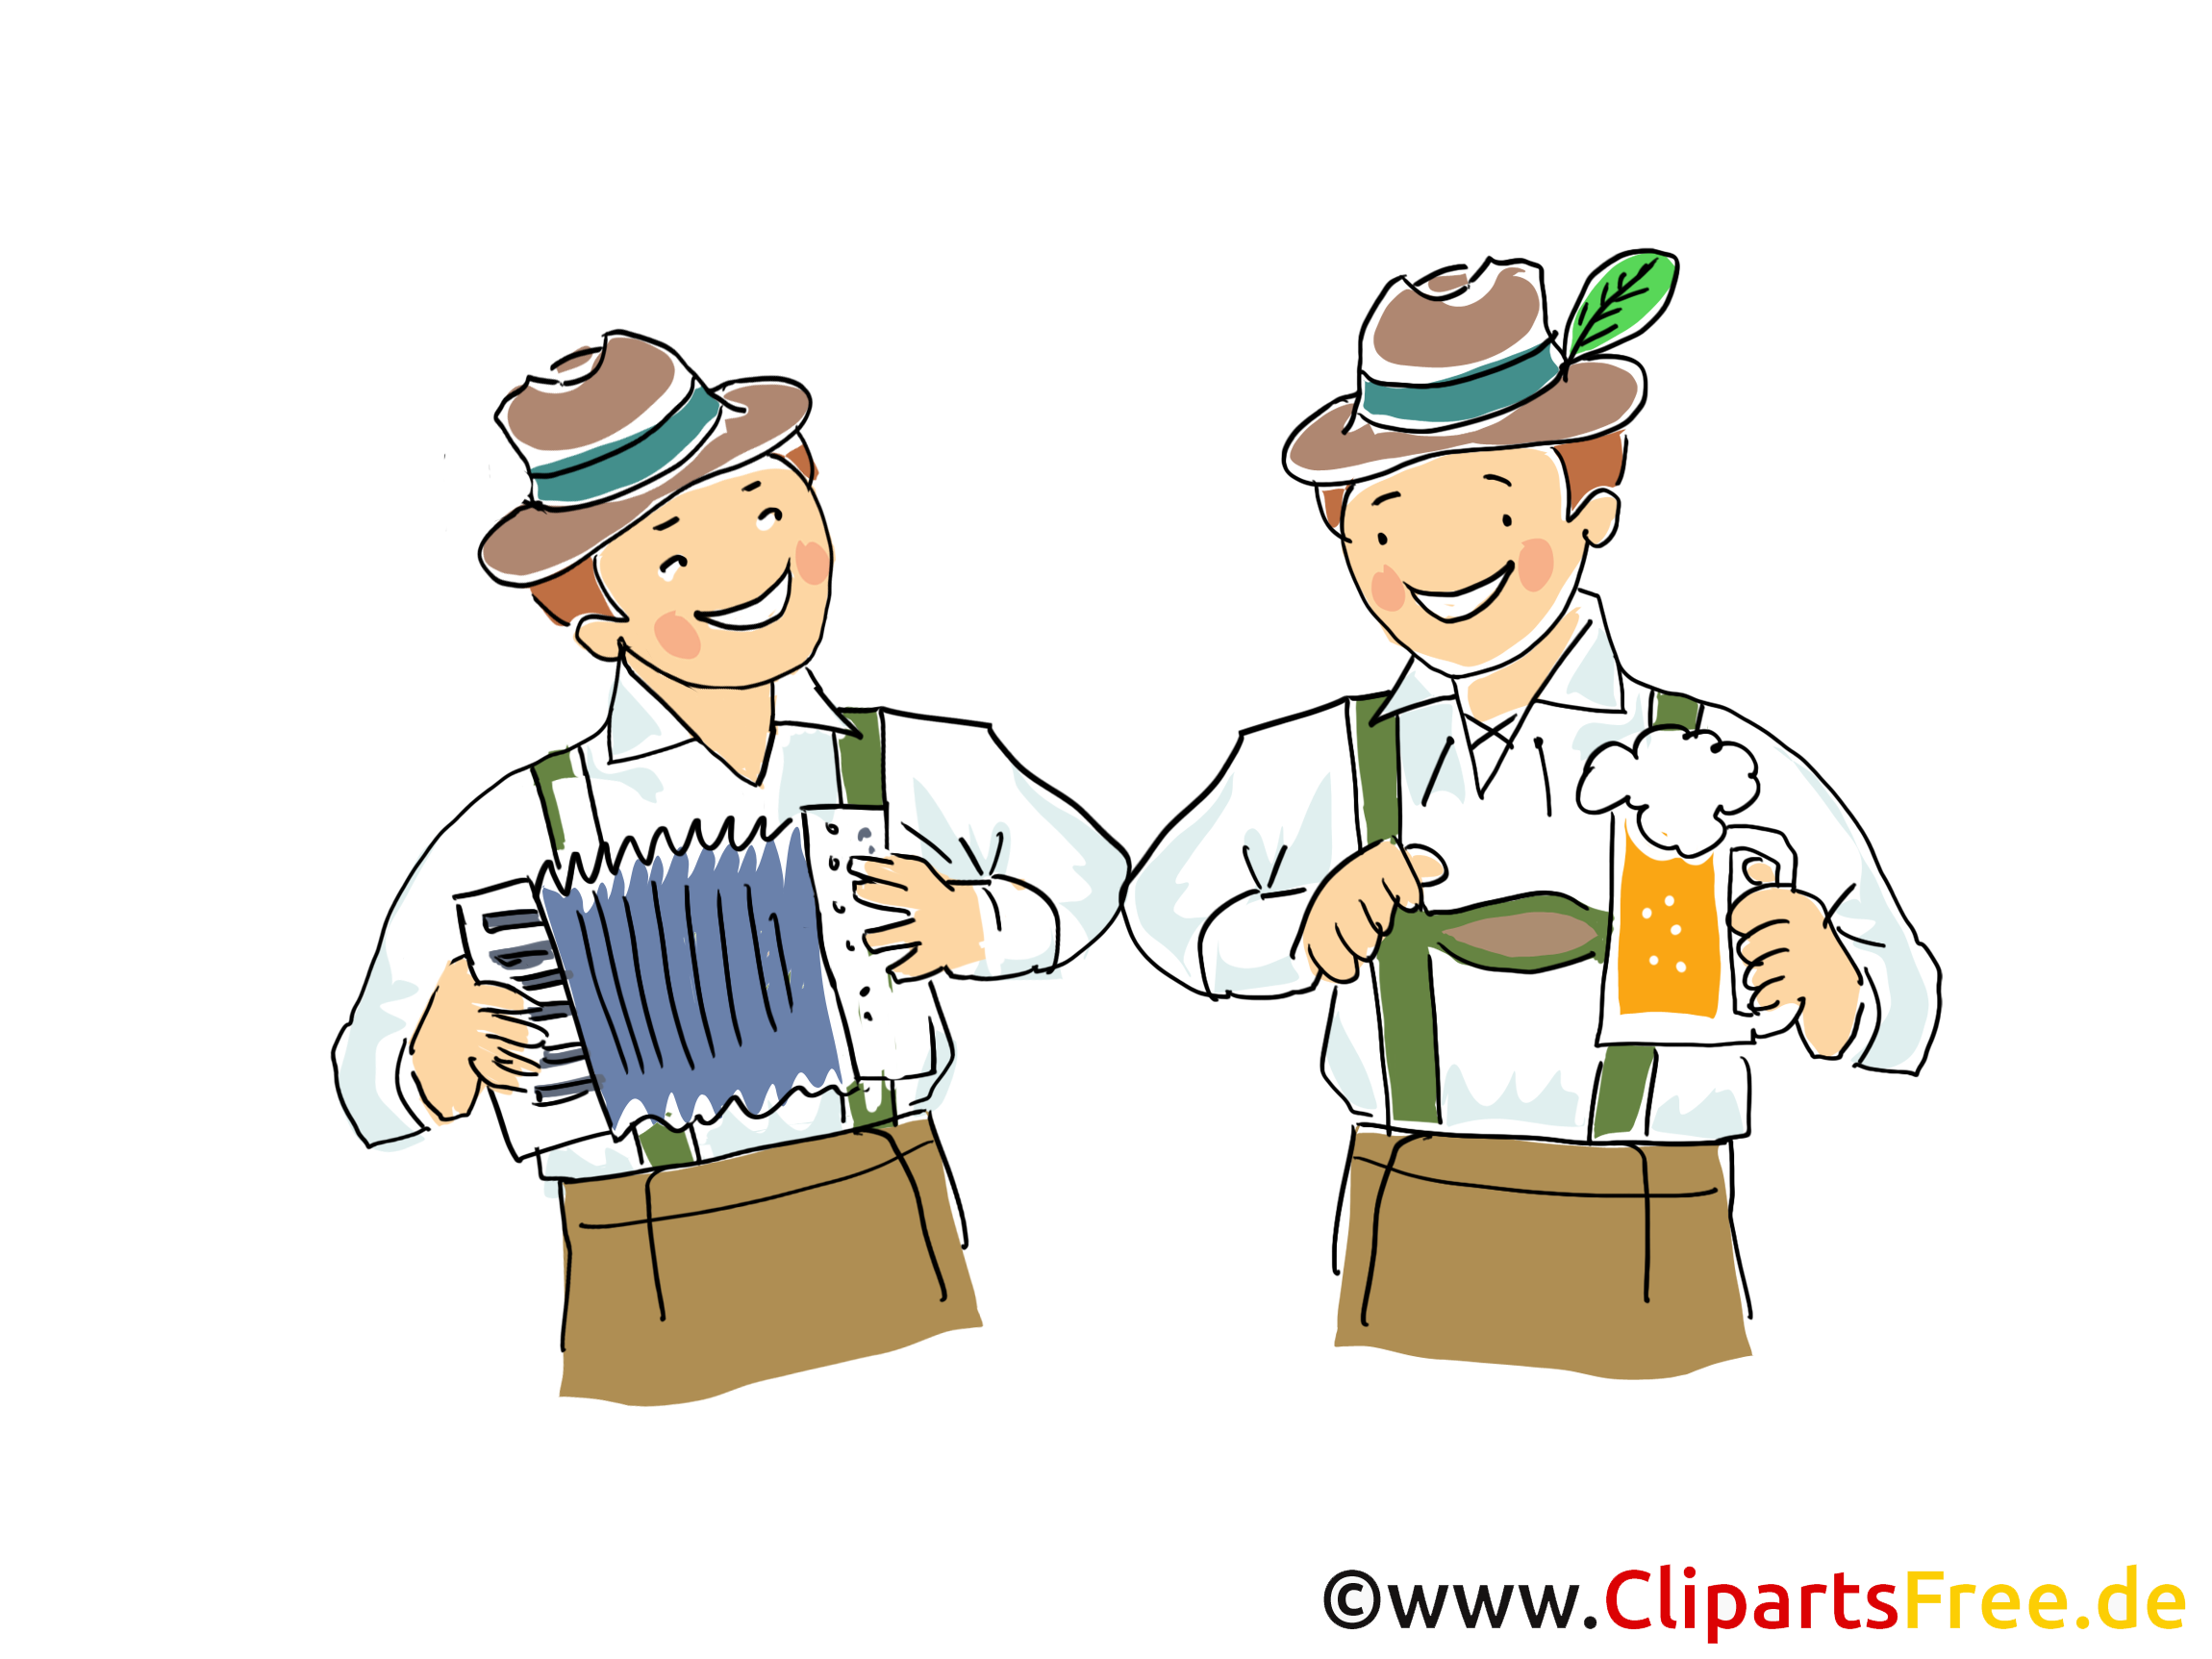 Tirol Clipart, Bild, Grafik, Illustration, Comic, Cartoon gratis.